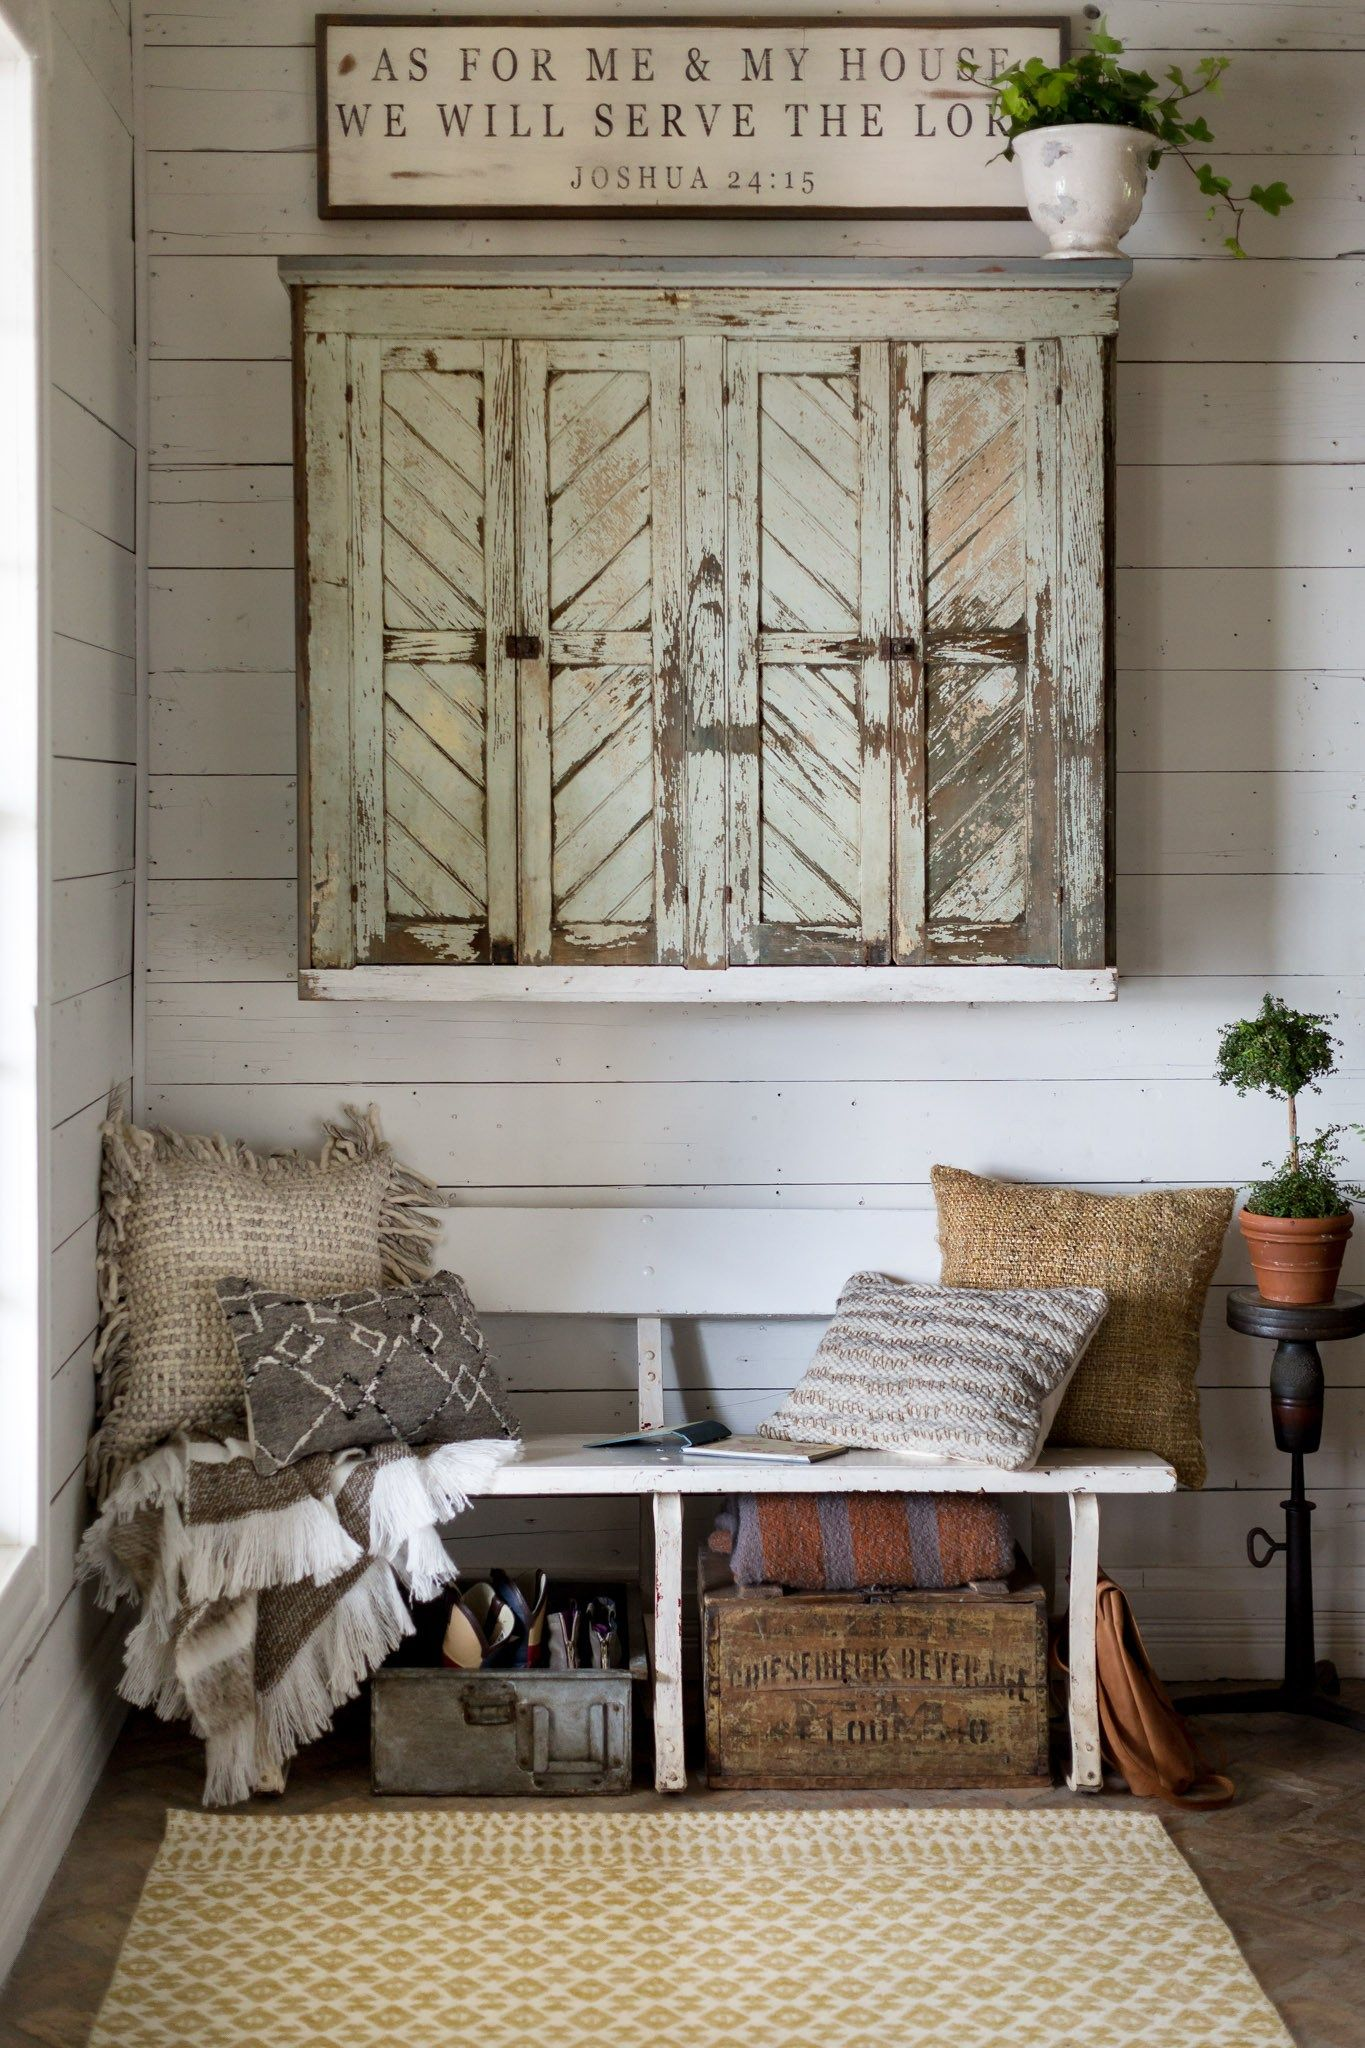 Magnolia Home Rugs by Joanna Gaines Are Now Available at Furniture